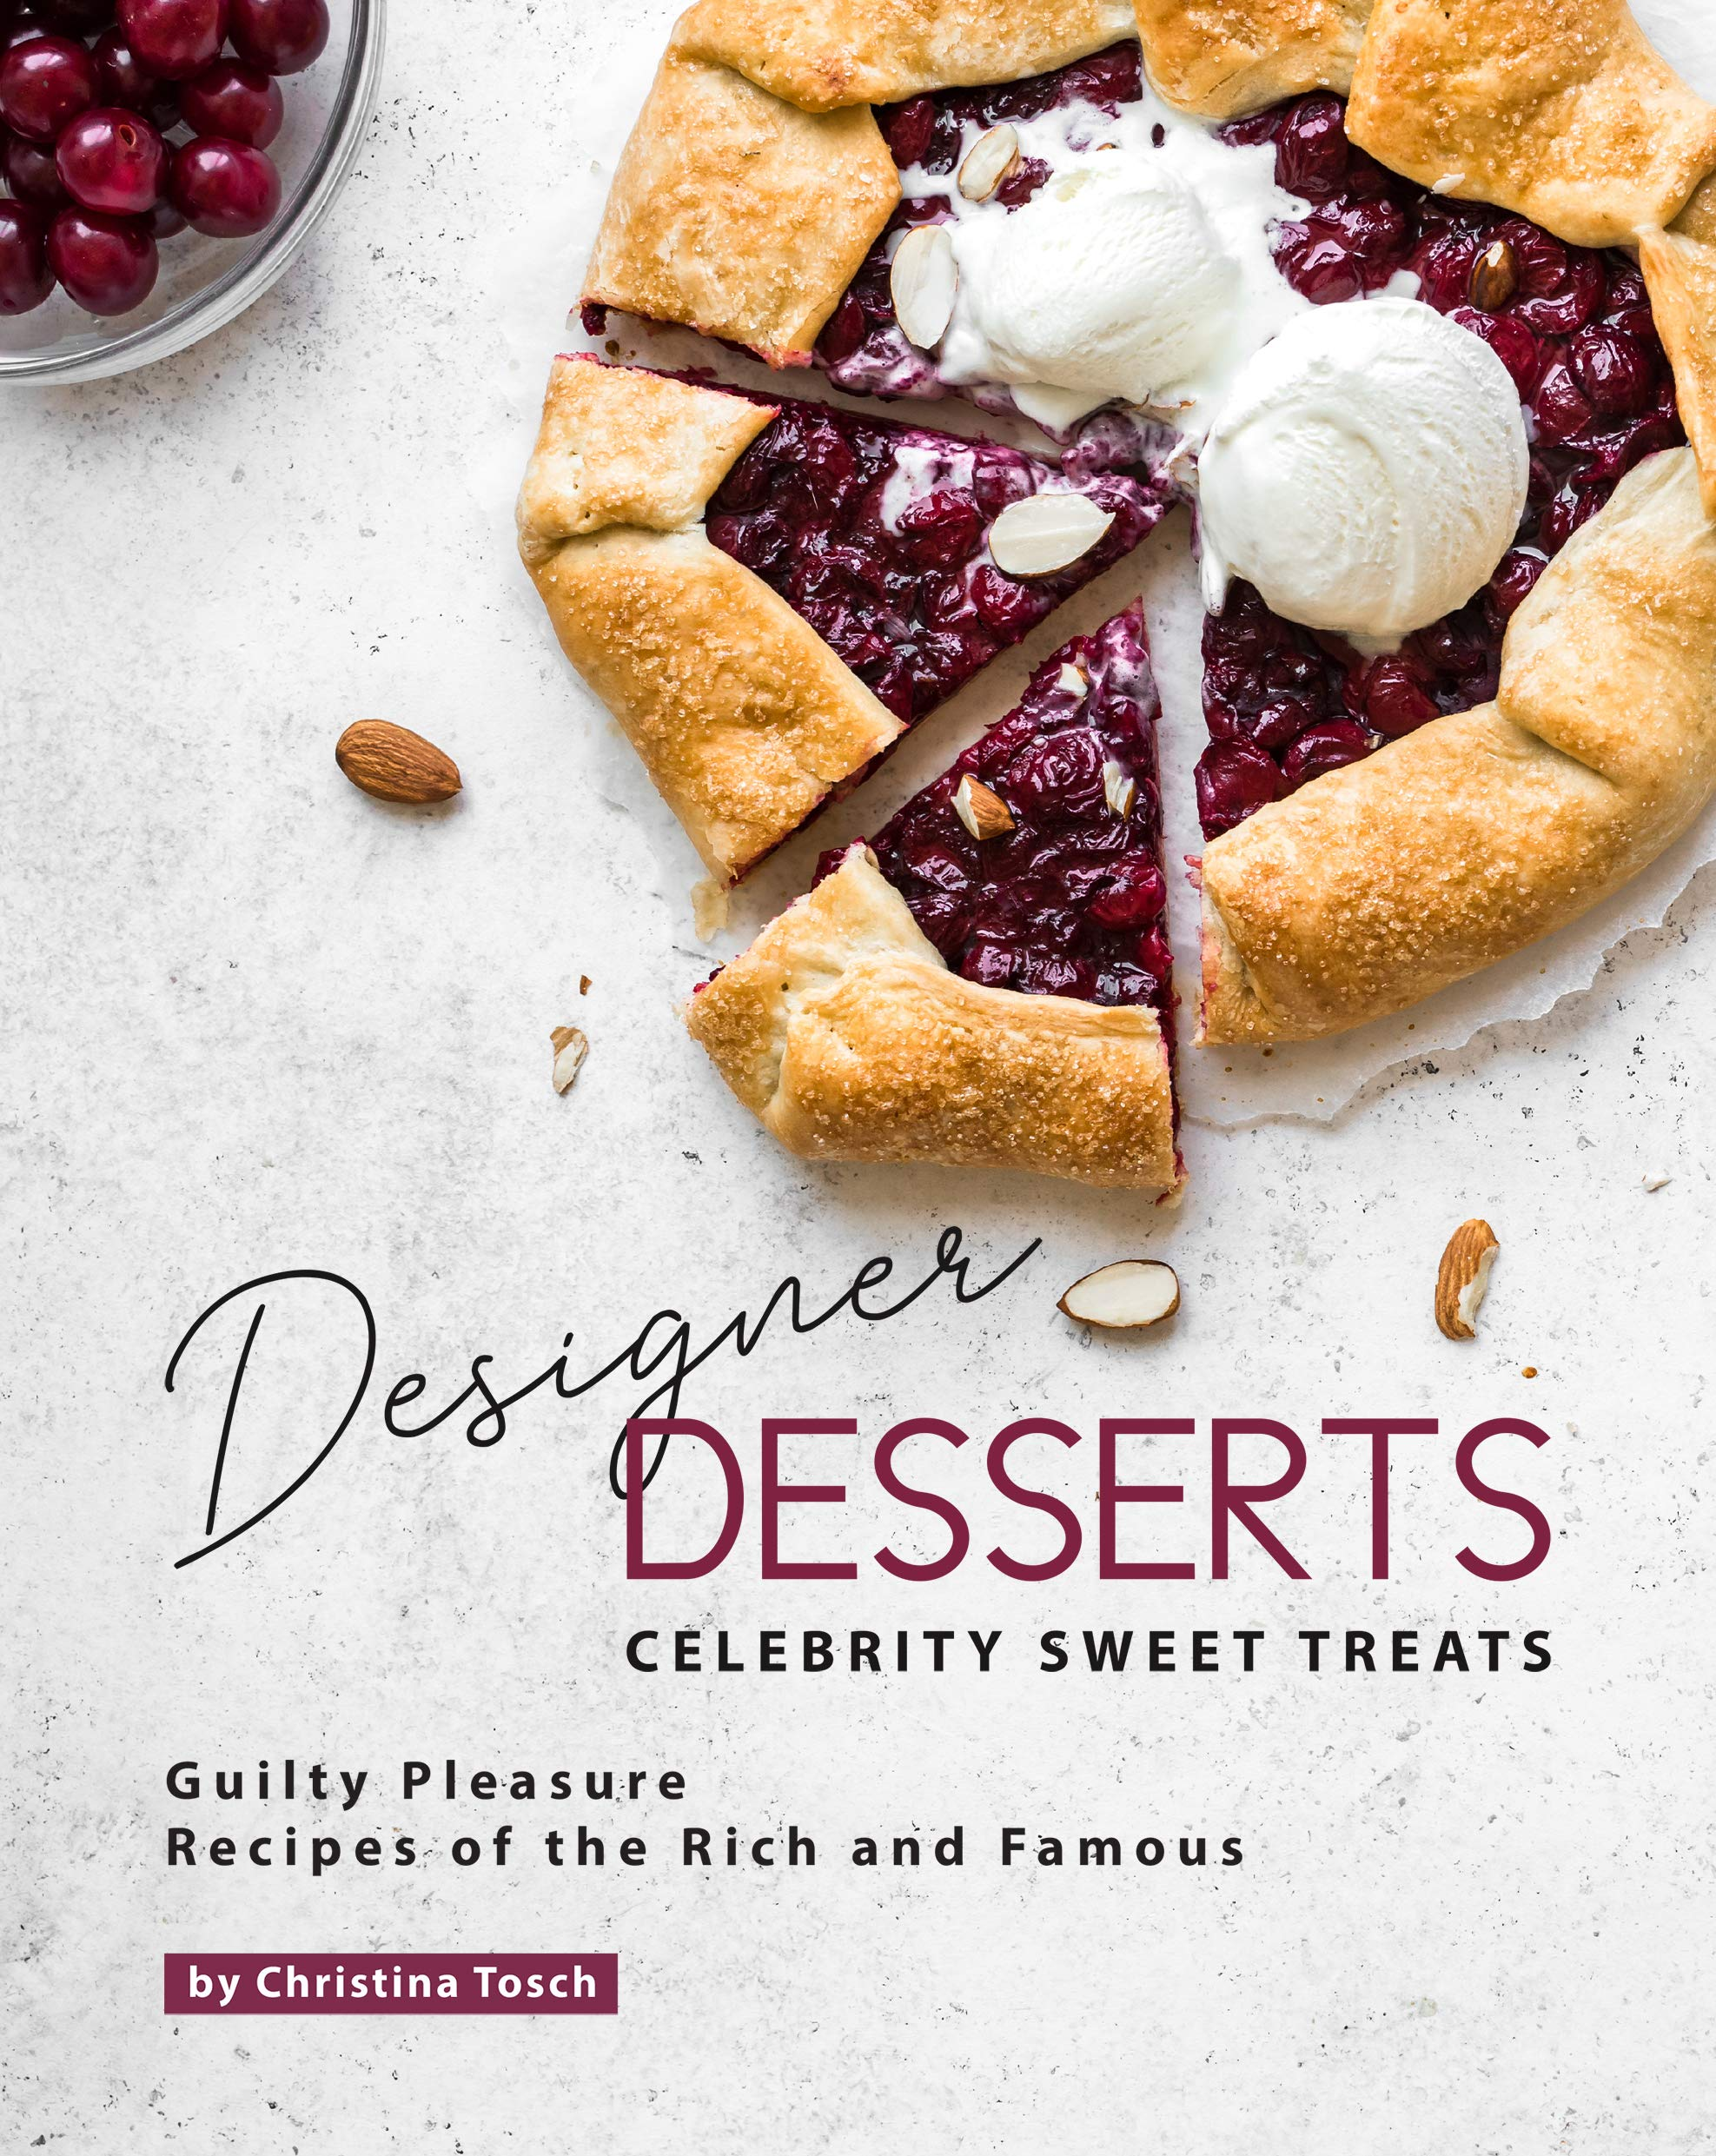 Designer Desserts Celebrity Sweet Treats: Guilty Pleasure Recipes of the Rich and Famous